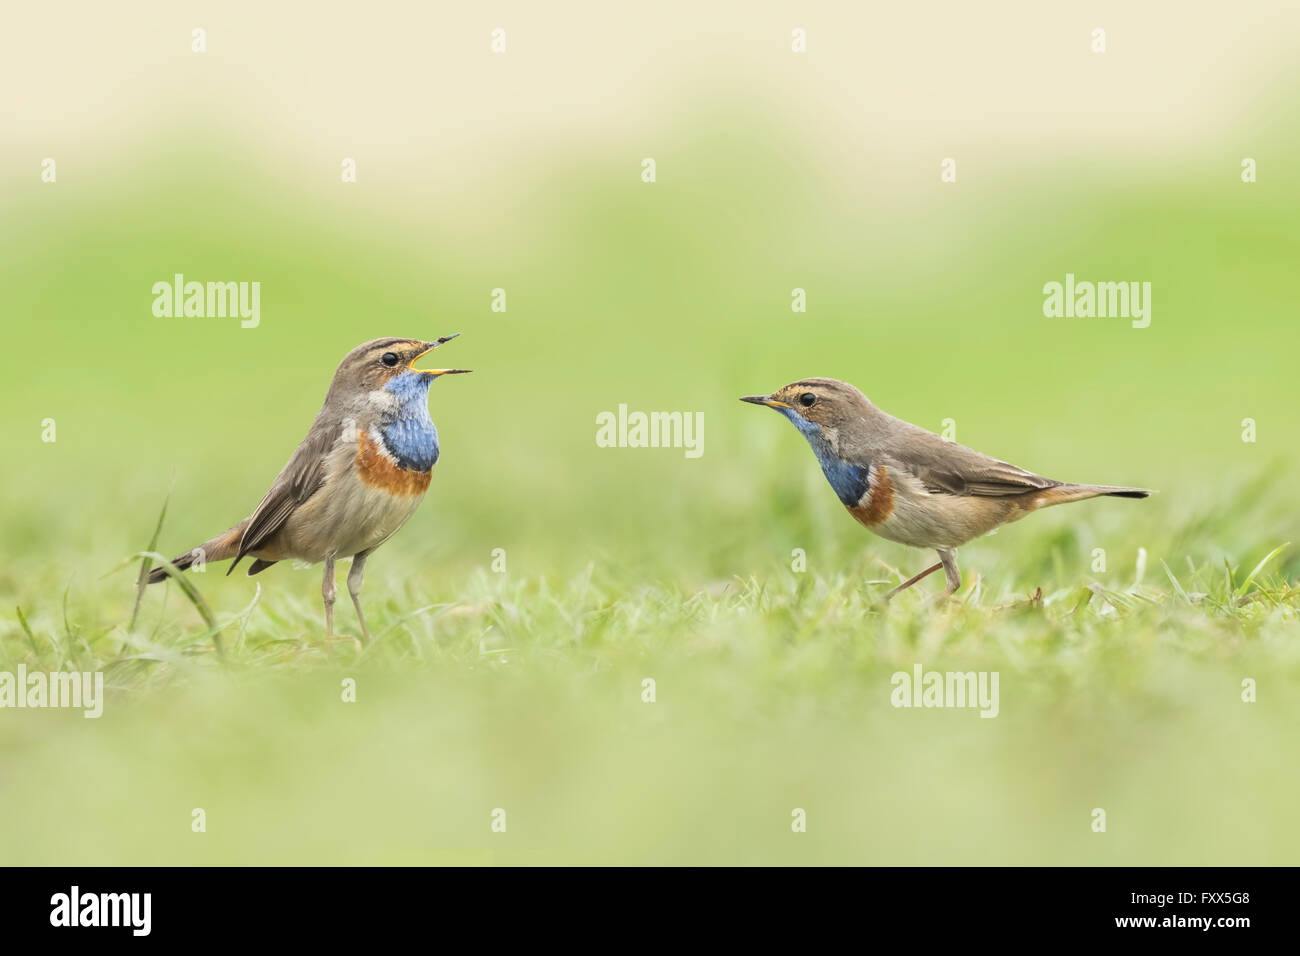 Two blue-throat song birds (Luscinia svecica cyanecula) mating in grass. The male displays for a female during breeding - Stock Image